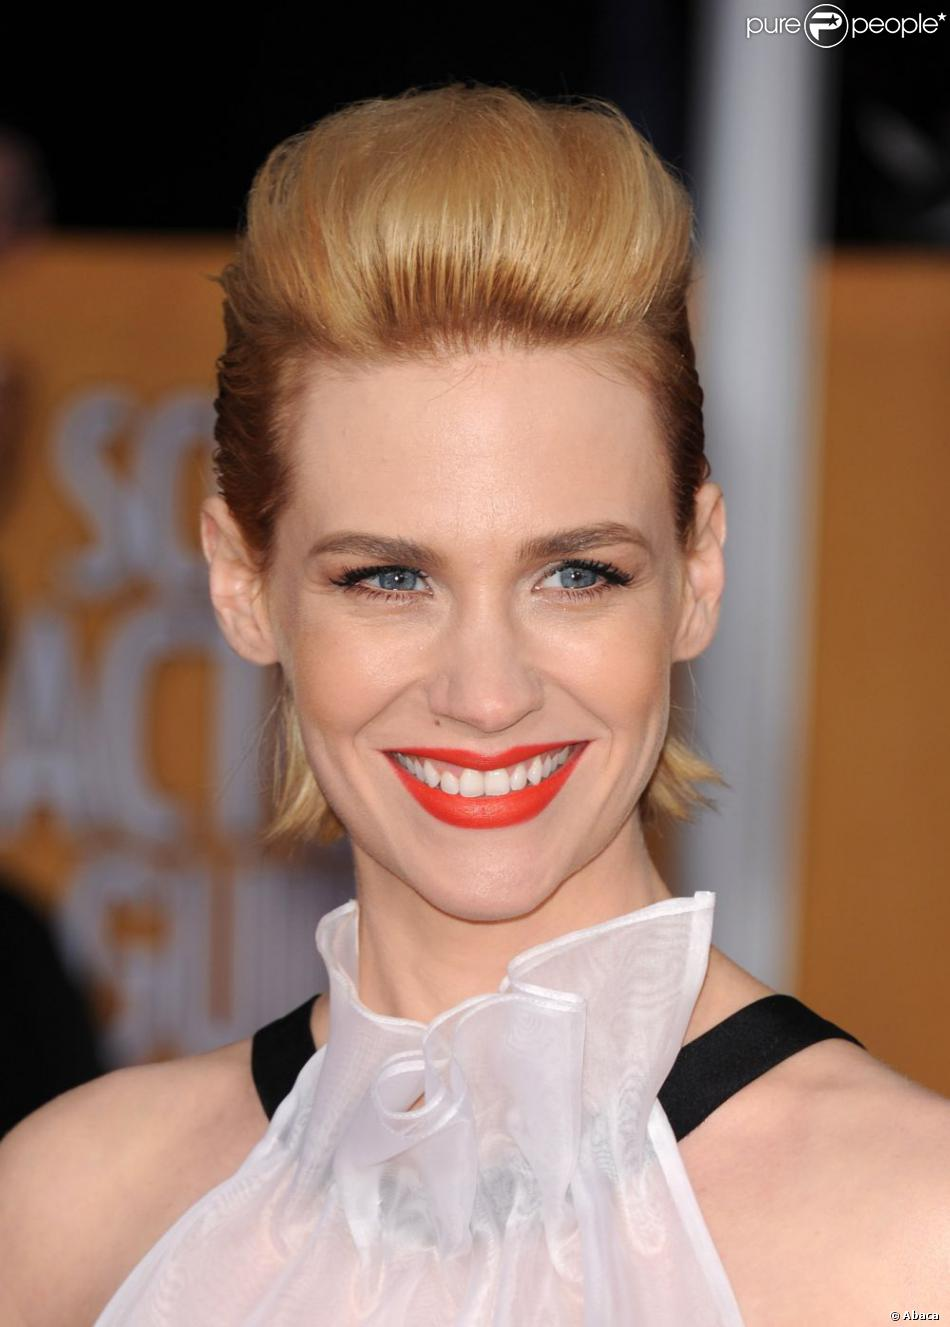 January Jones affiche une belle coupe rétro fantasque blonde pour les Screen Actors Guild (SAG) Awards à Los Angeles, le 27 janvier 2013.